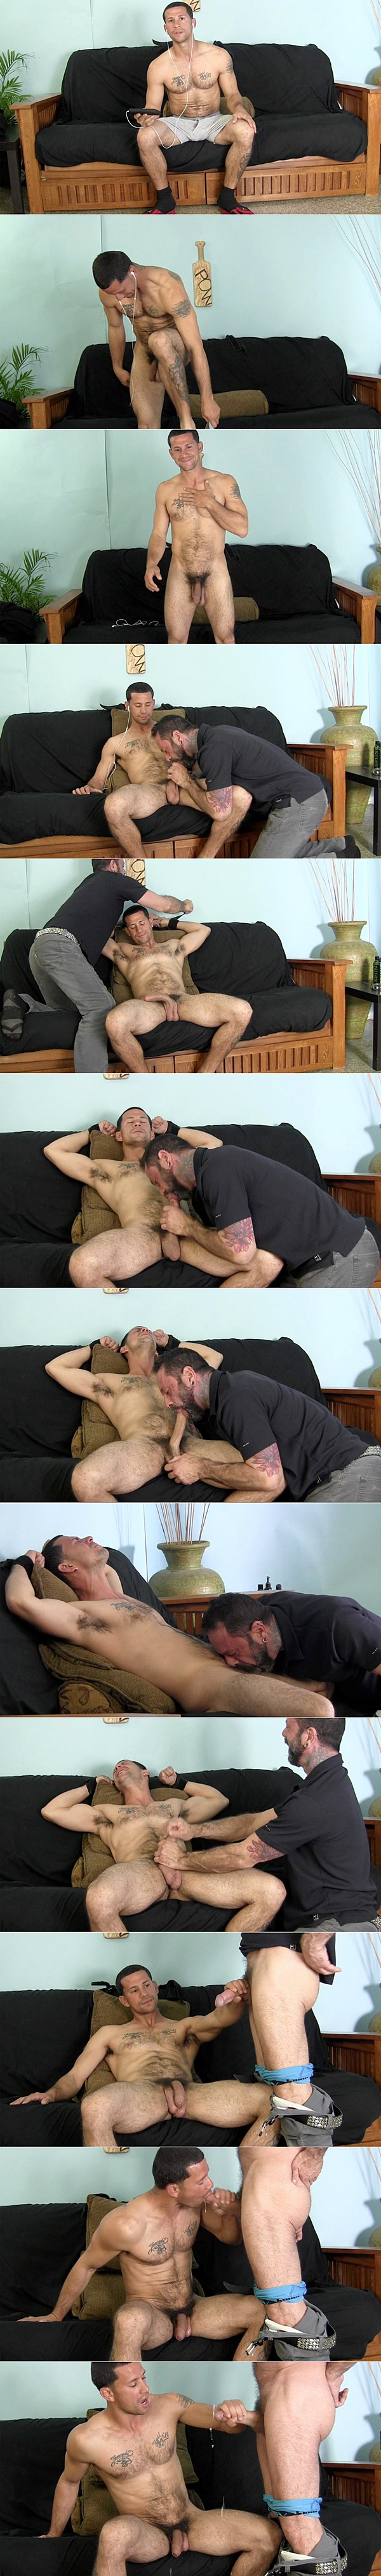 Well hung straight stud Victor sucks dick for the first time before he strokes amazing big loads out of Franco's big cock at Straightfraternity 02